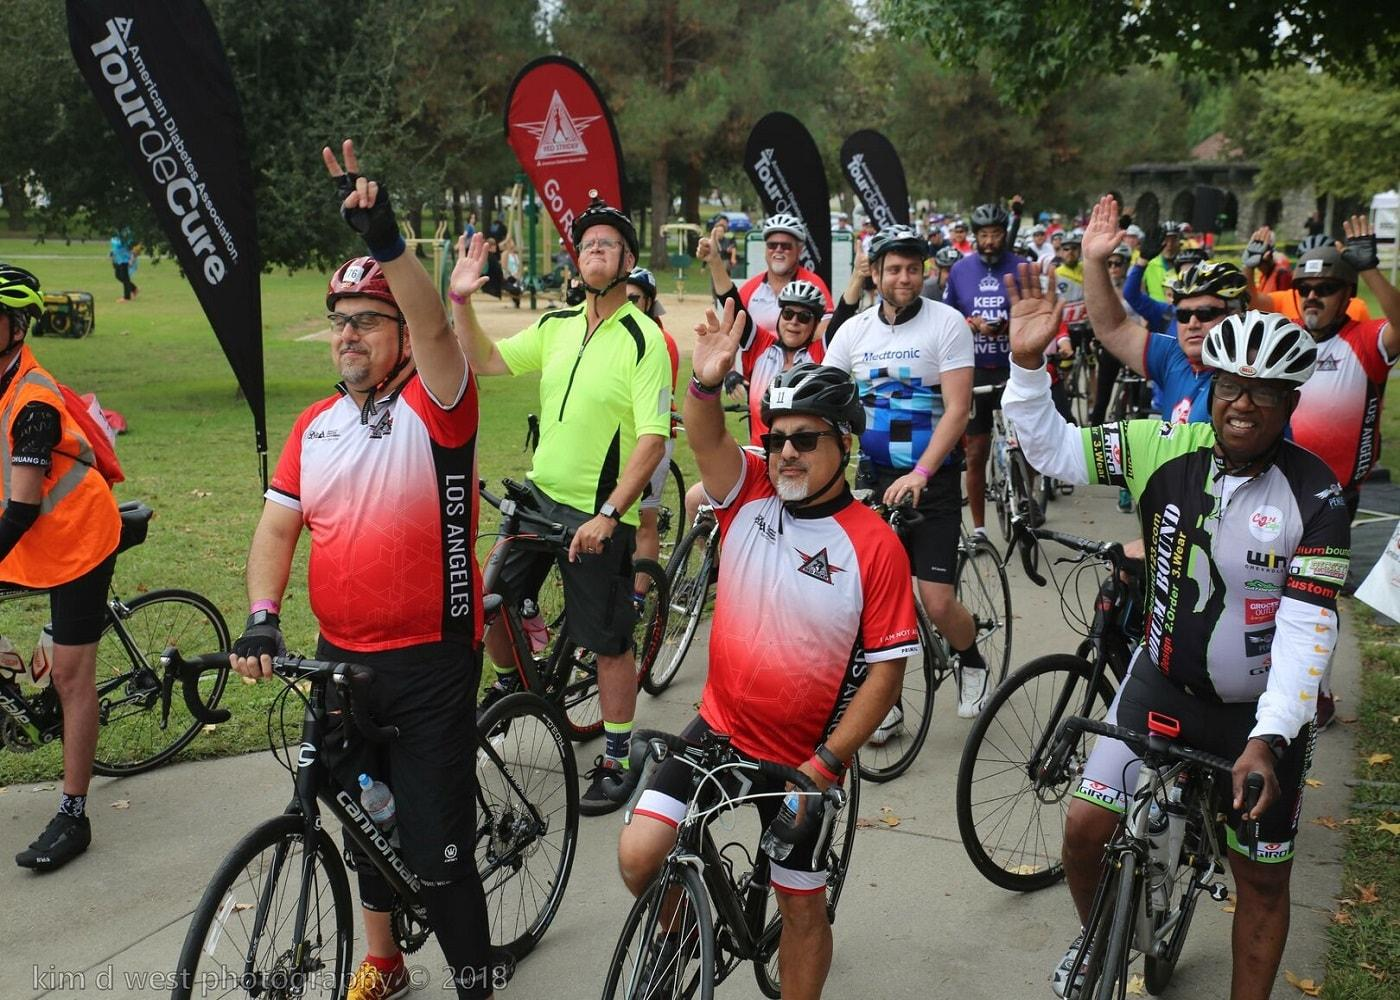 men at tour de cure fundraising event